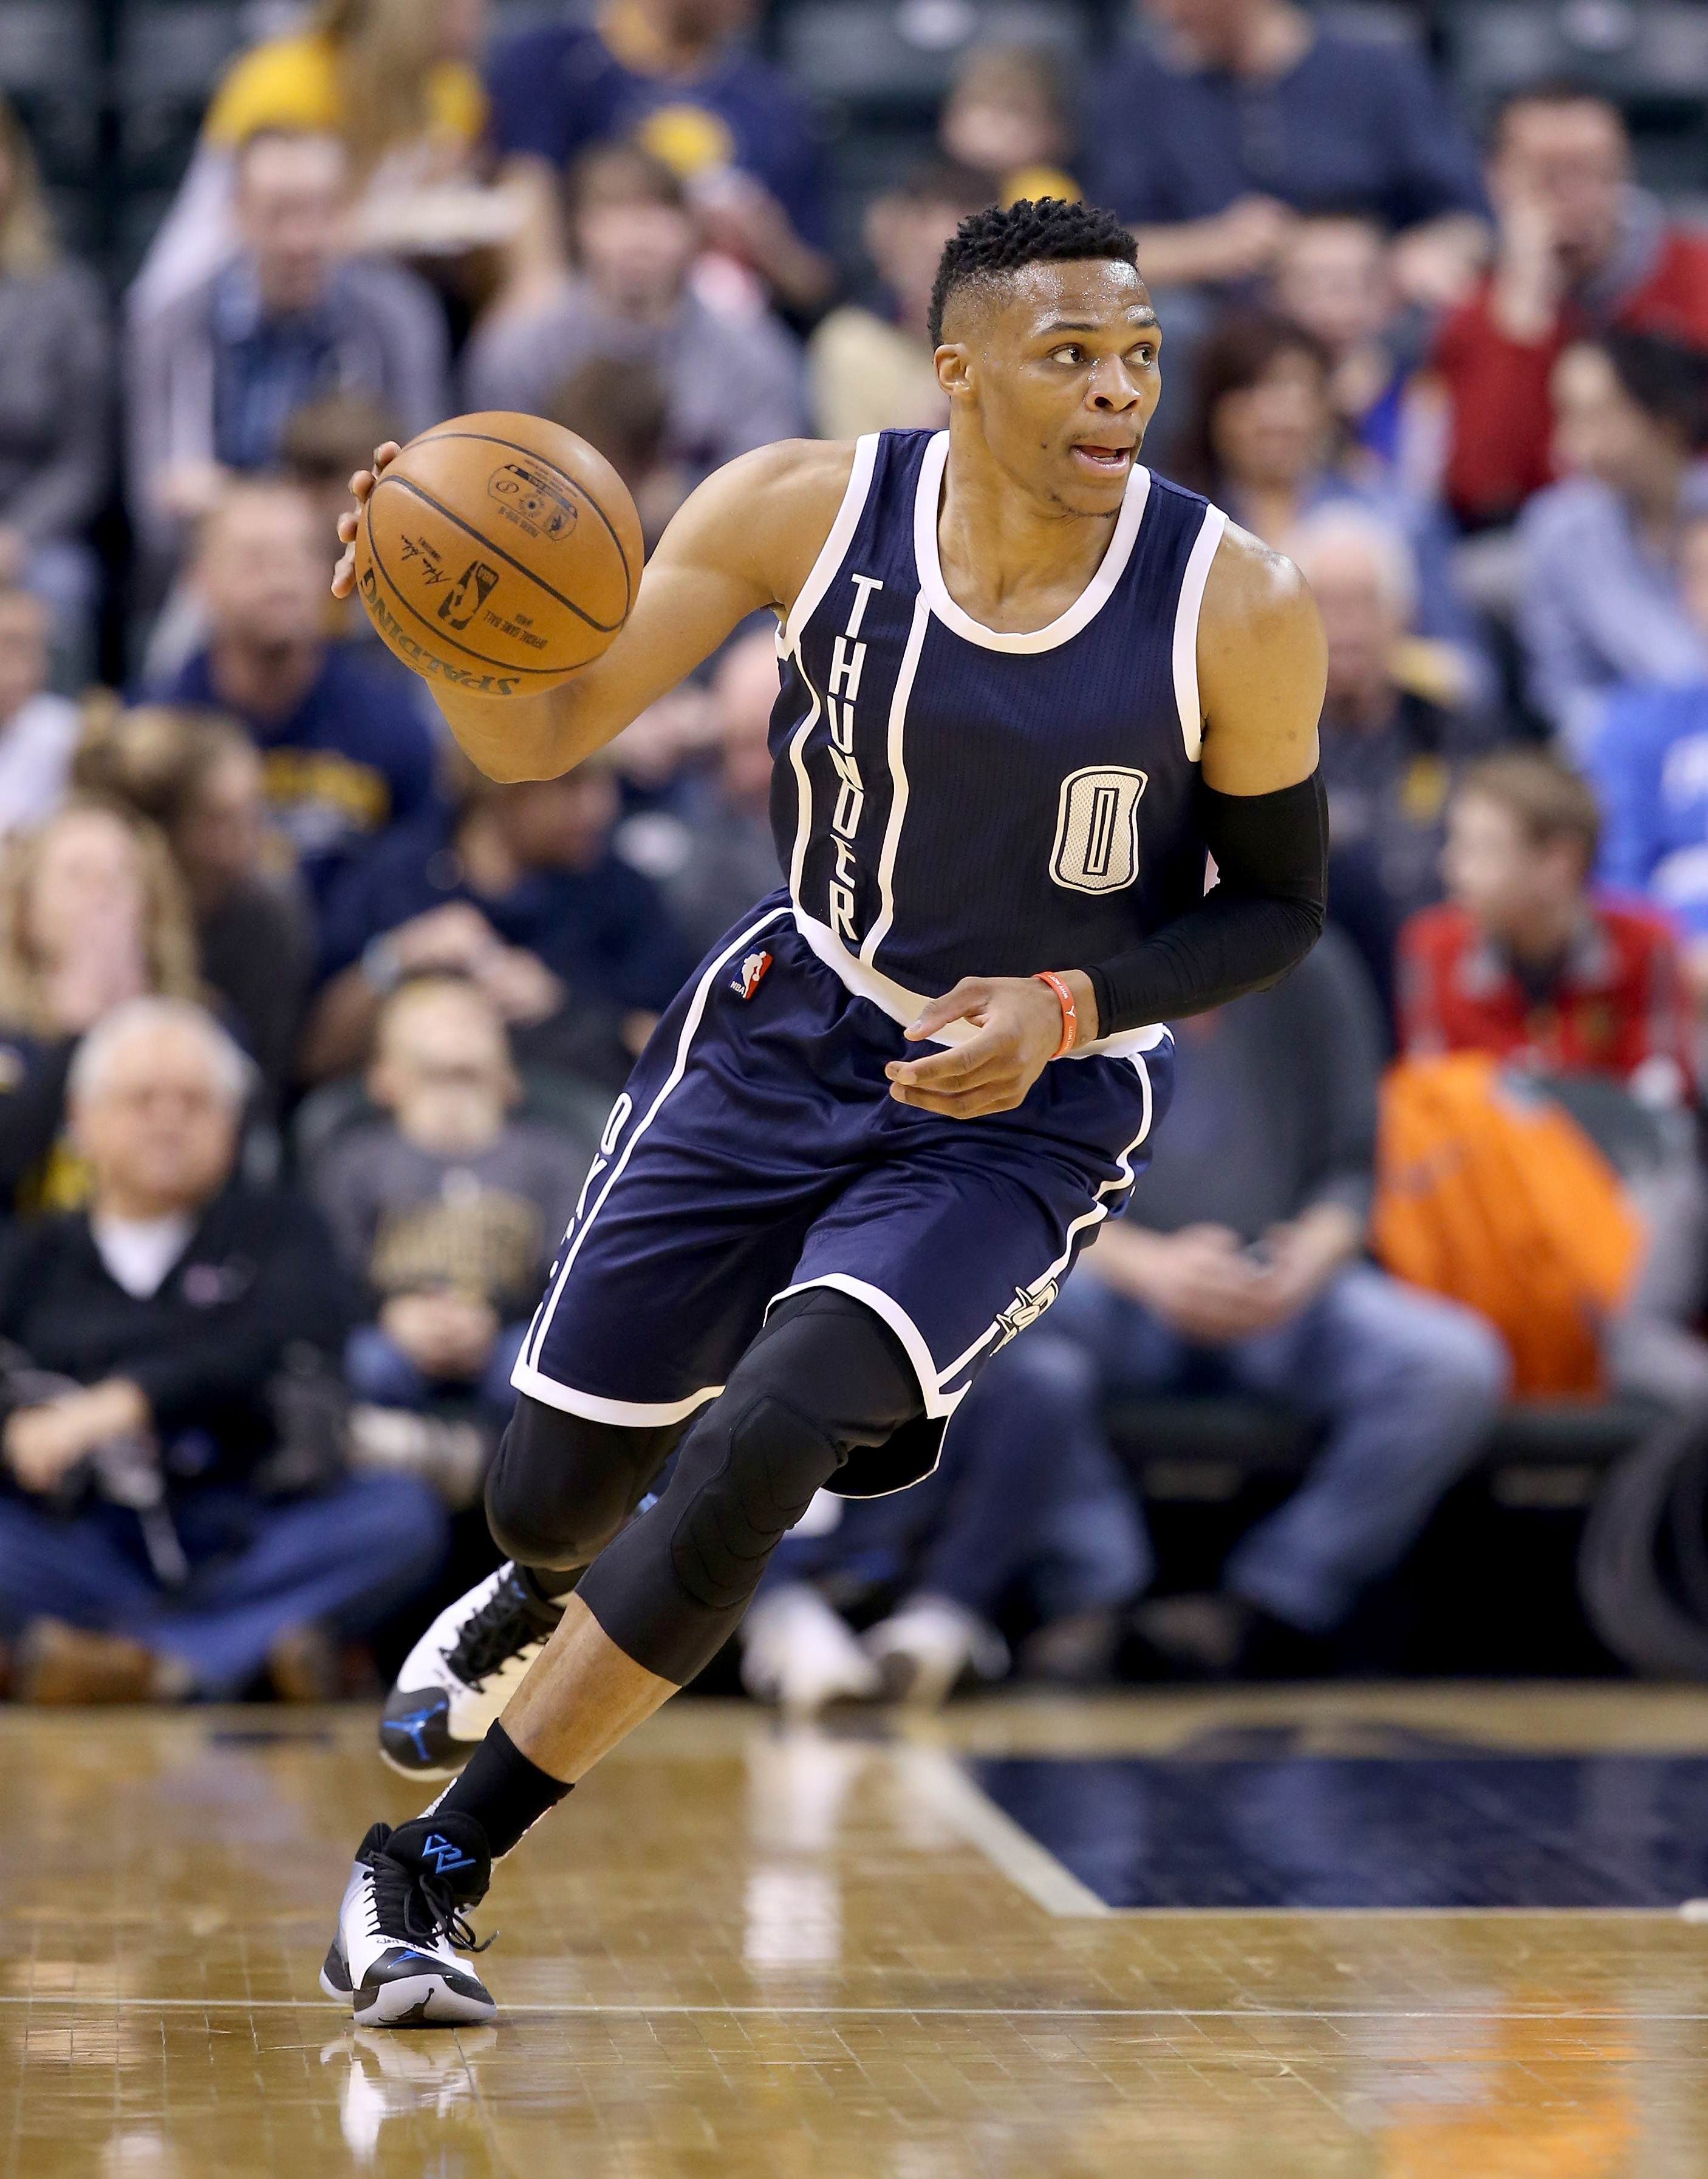 INDIANAPOLIS, IN - MARCH 19:  Russell Westbrook #0 of the Oklahoma City Thunder dribbles the ball during the 115-111 win over the Indiana Pacers at Bankers Life Fieldhouse on March 19, 2016 in Indianapolis, Indiana.   (Photo by Andy Lyons/Getty Images)